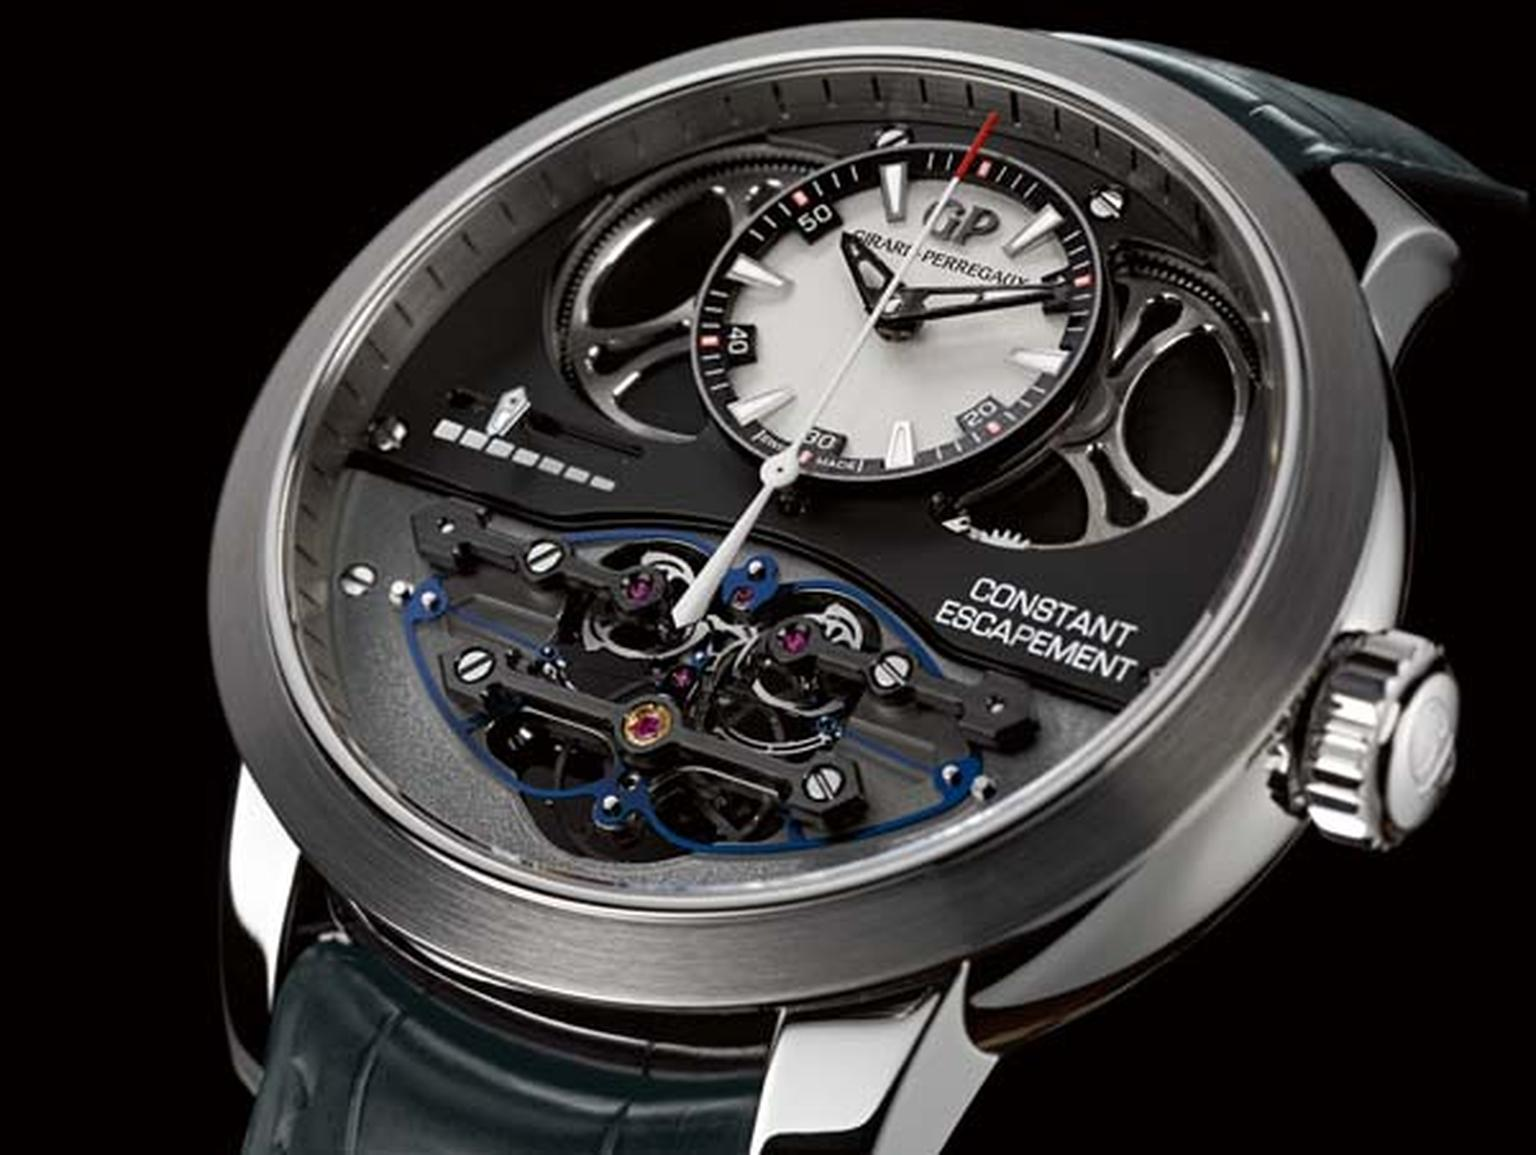 girard_perregaux_gp_close-up_cadran_93500_53_131_ba6c.jpg